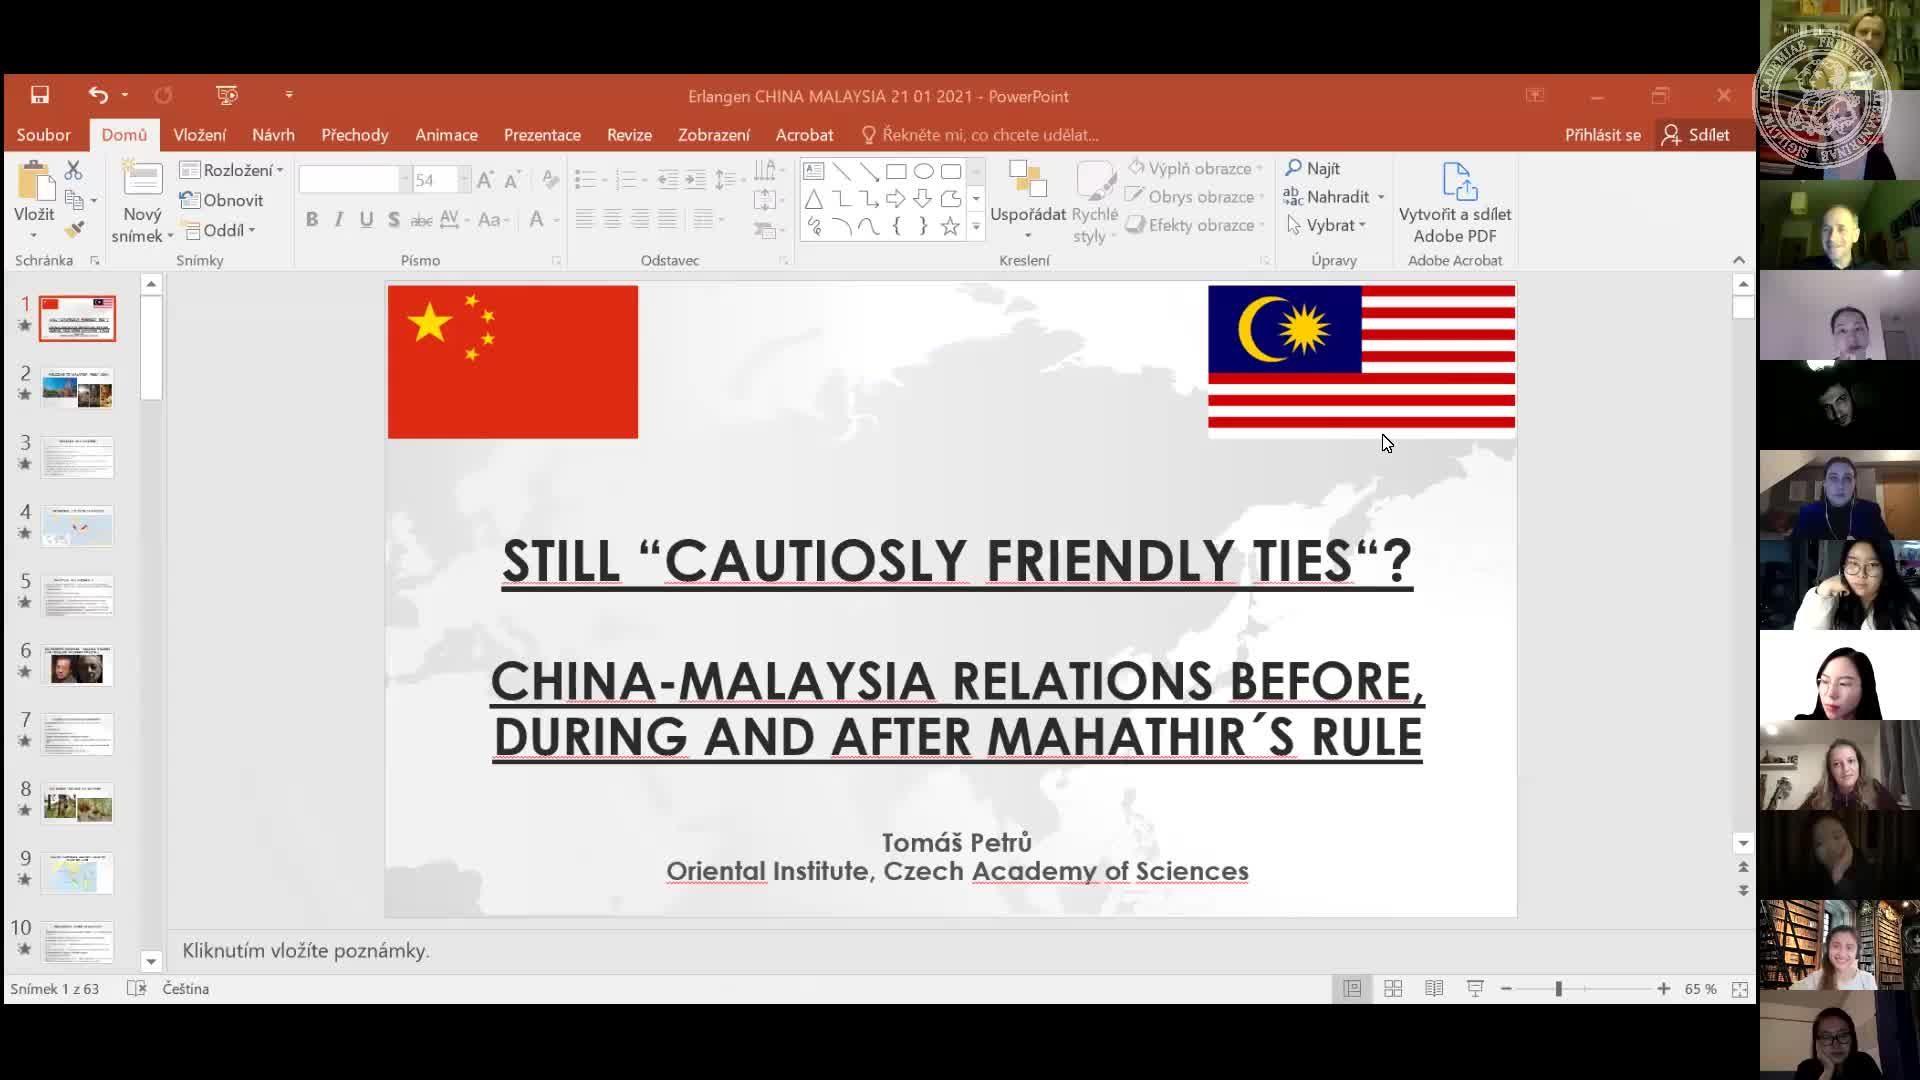 """Tomas Petru (Czech Academy of Sciences): """"Still Cautiously Friendly Ties? China-Malaysia Relations Before, During, and After Mahathirs Second Rule (2018-February 2020)"""" preview image"""